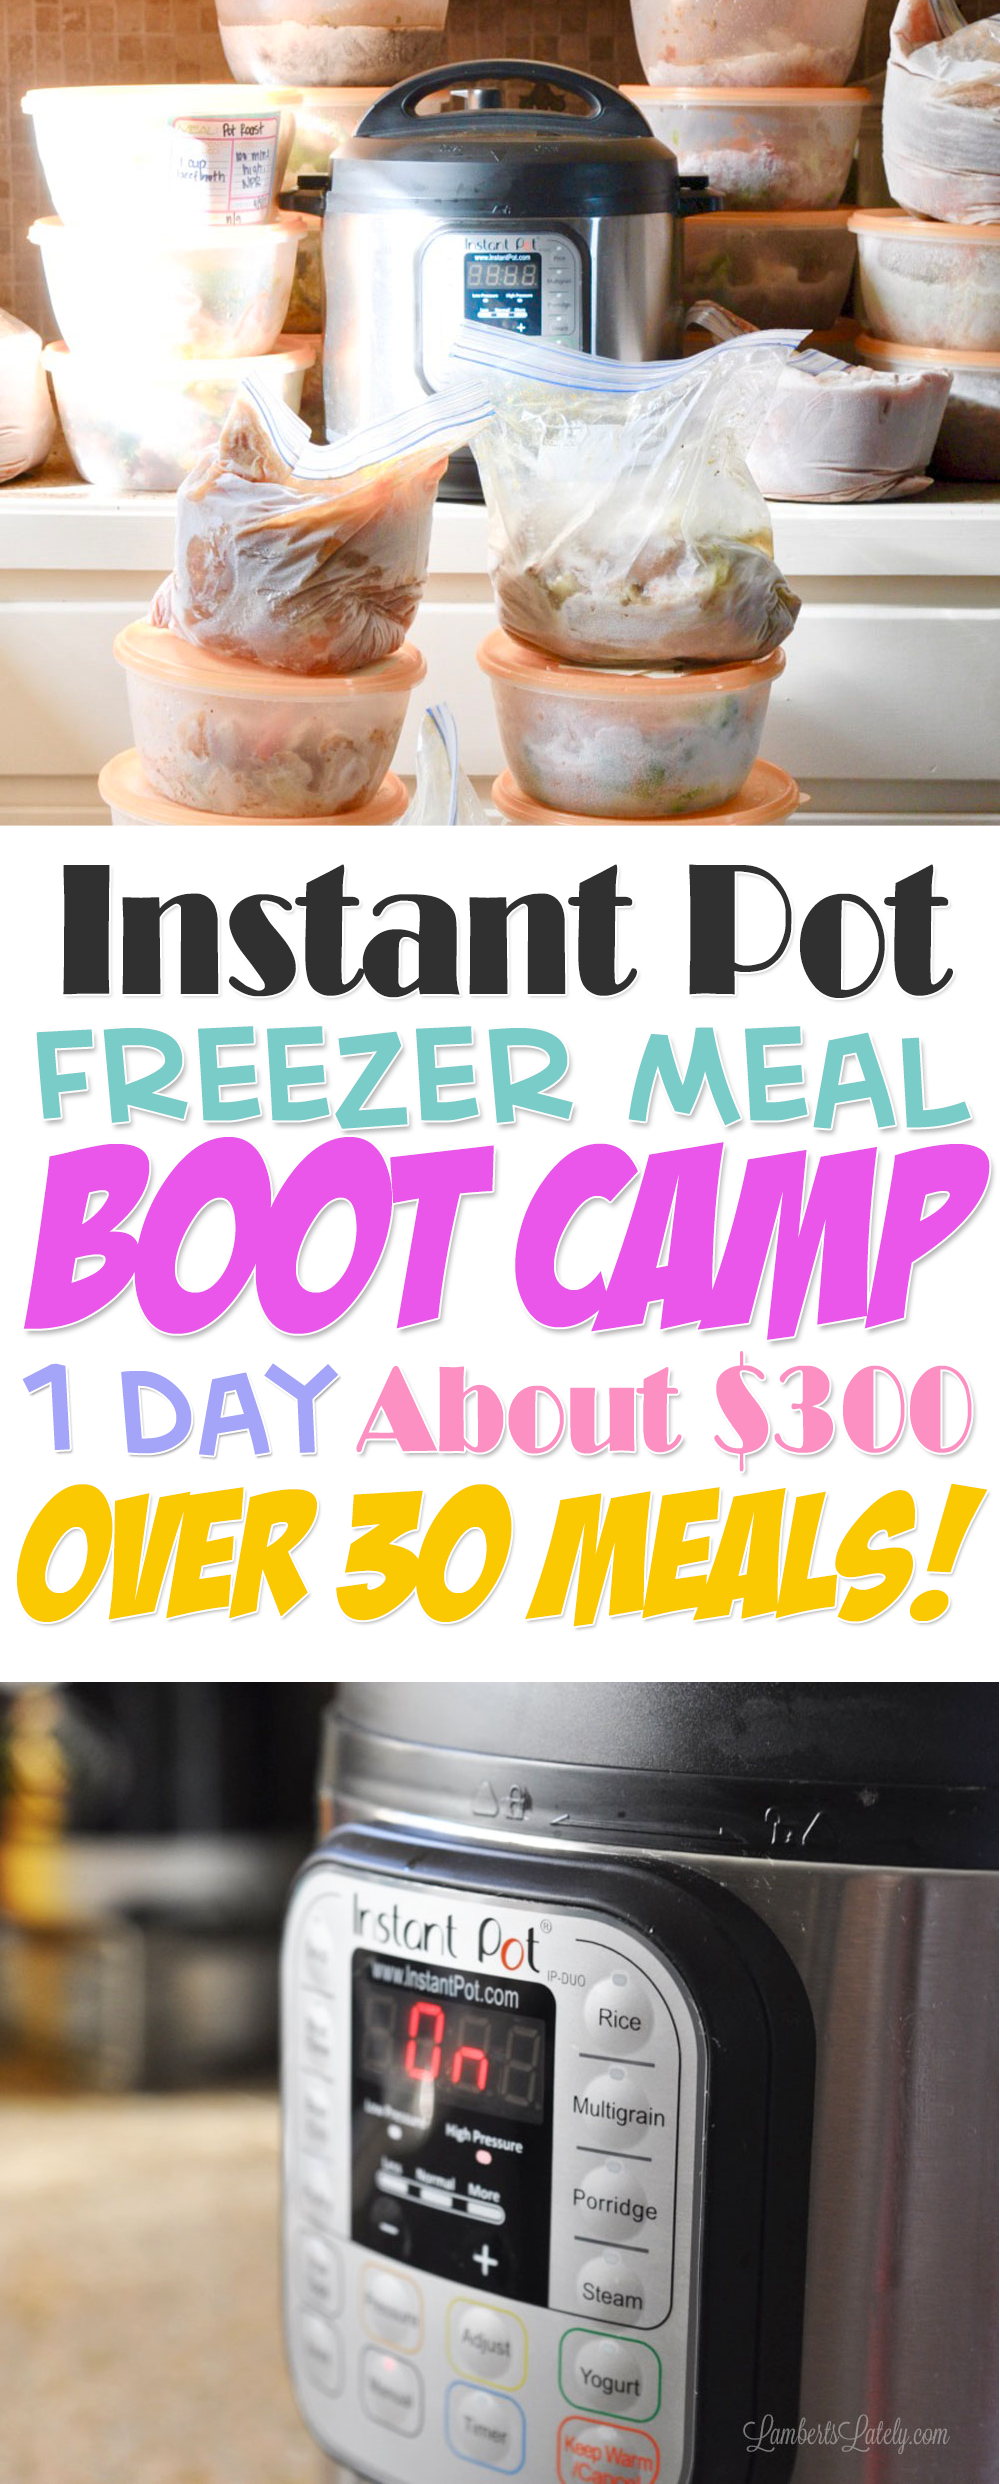 The original instant pot freezer meal boot camp one day of work instant pot freezer meal boot camp cheap easy monthly cooking dinner ideas forumfinder Image collections